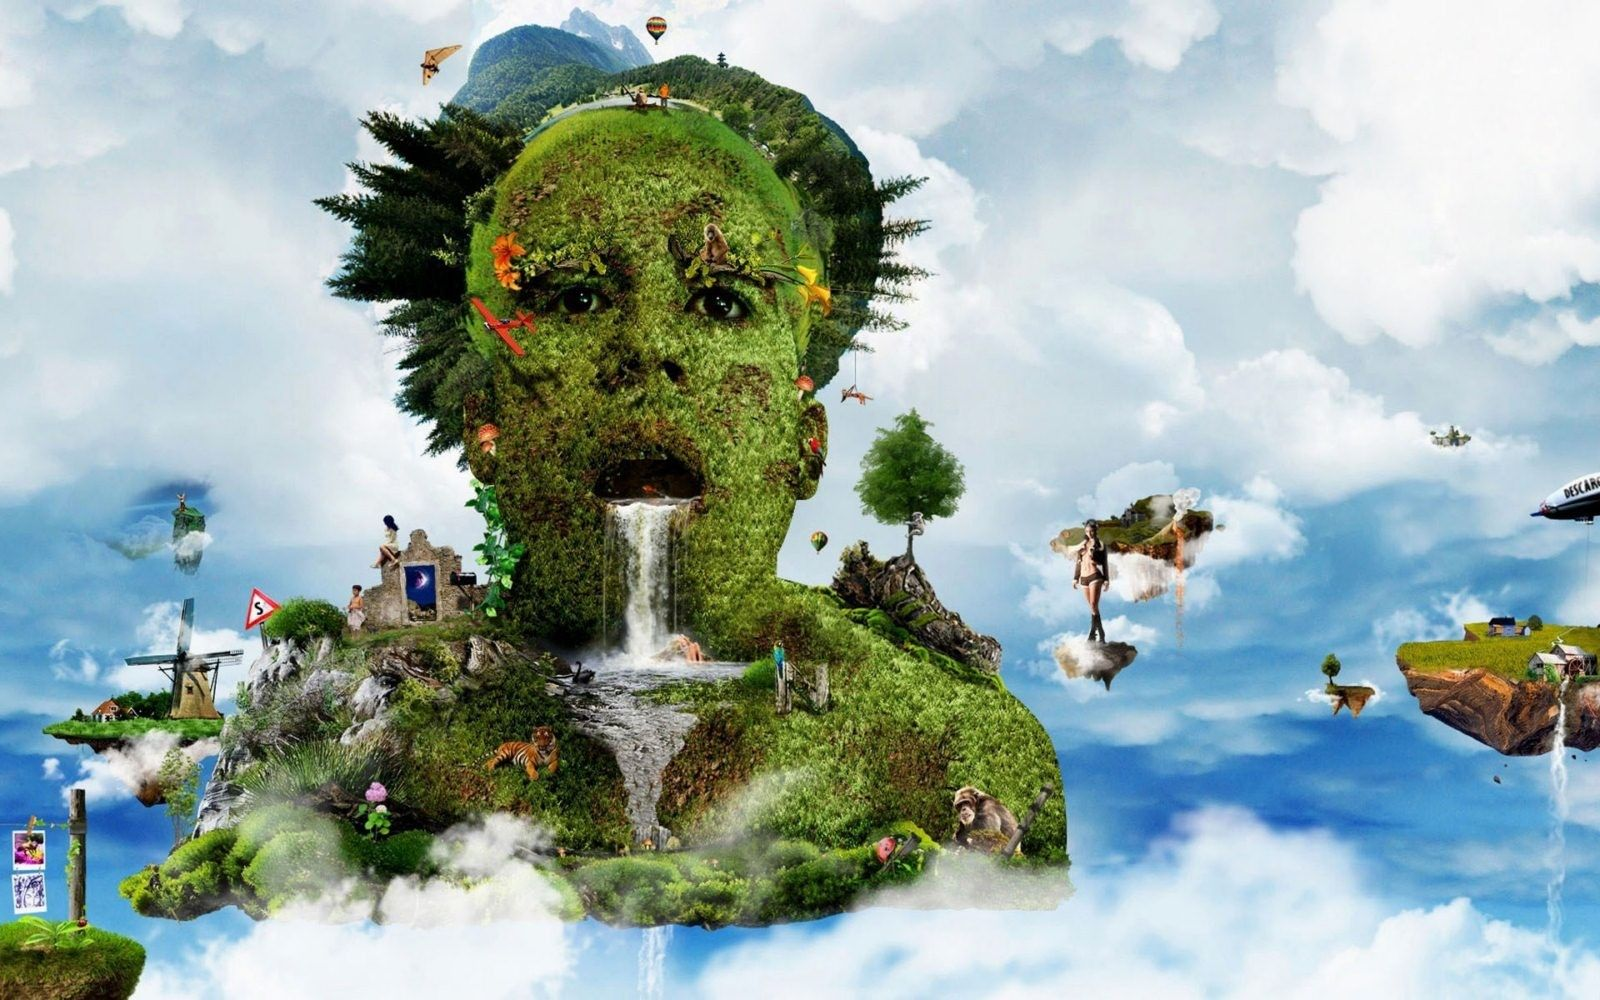 Environmental issues are harmful aspects of human activity